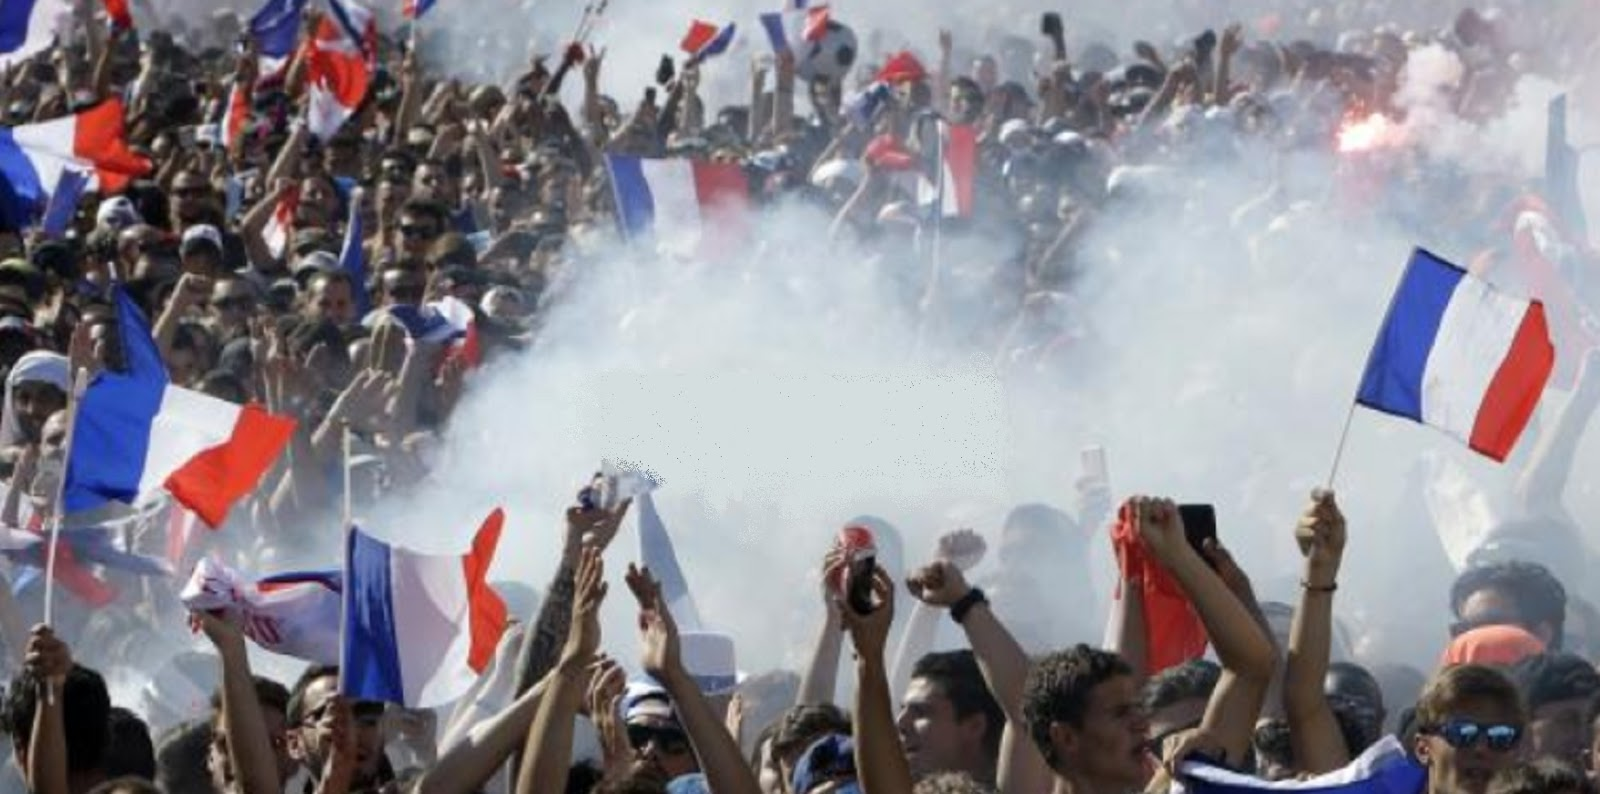 WORLD CUP, FRANCE